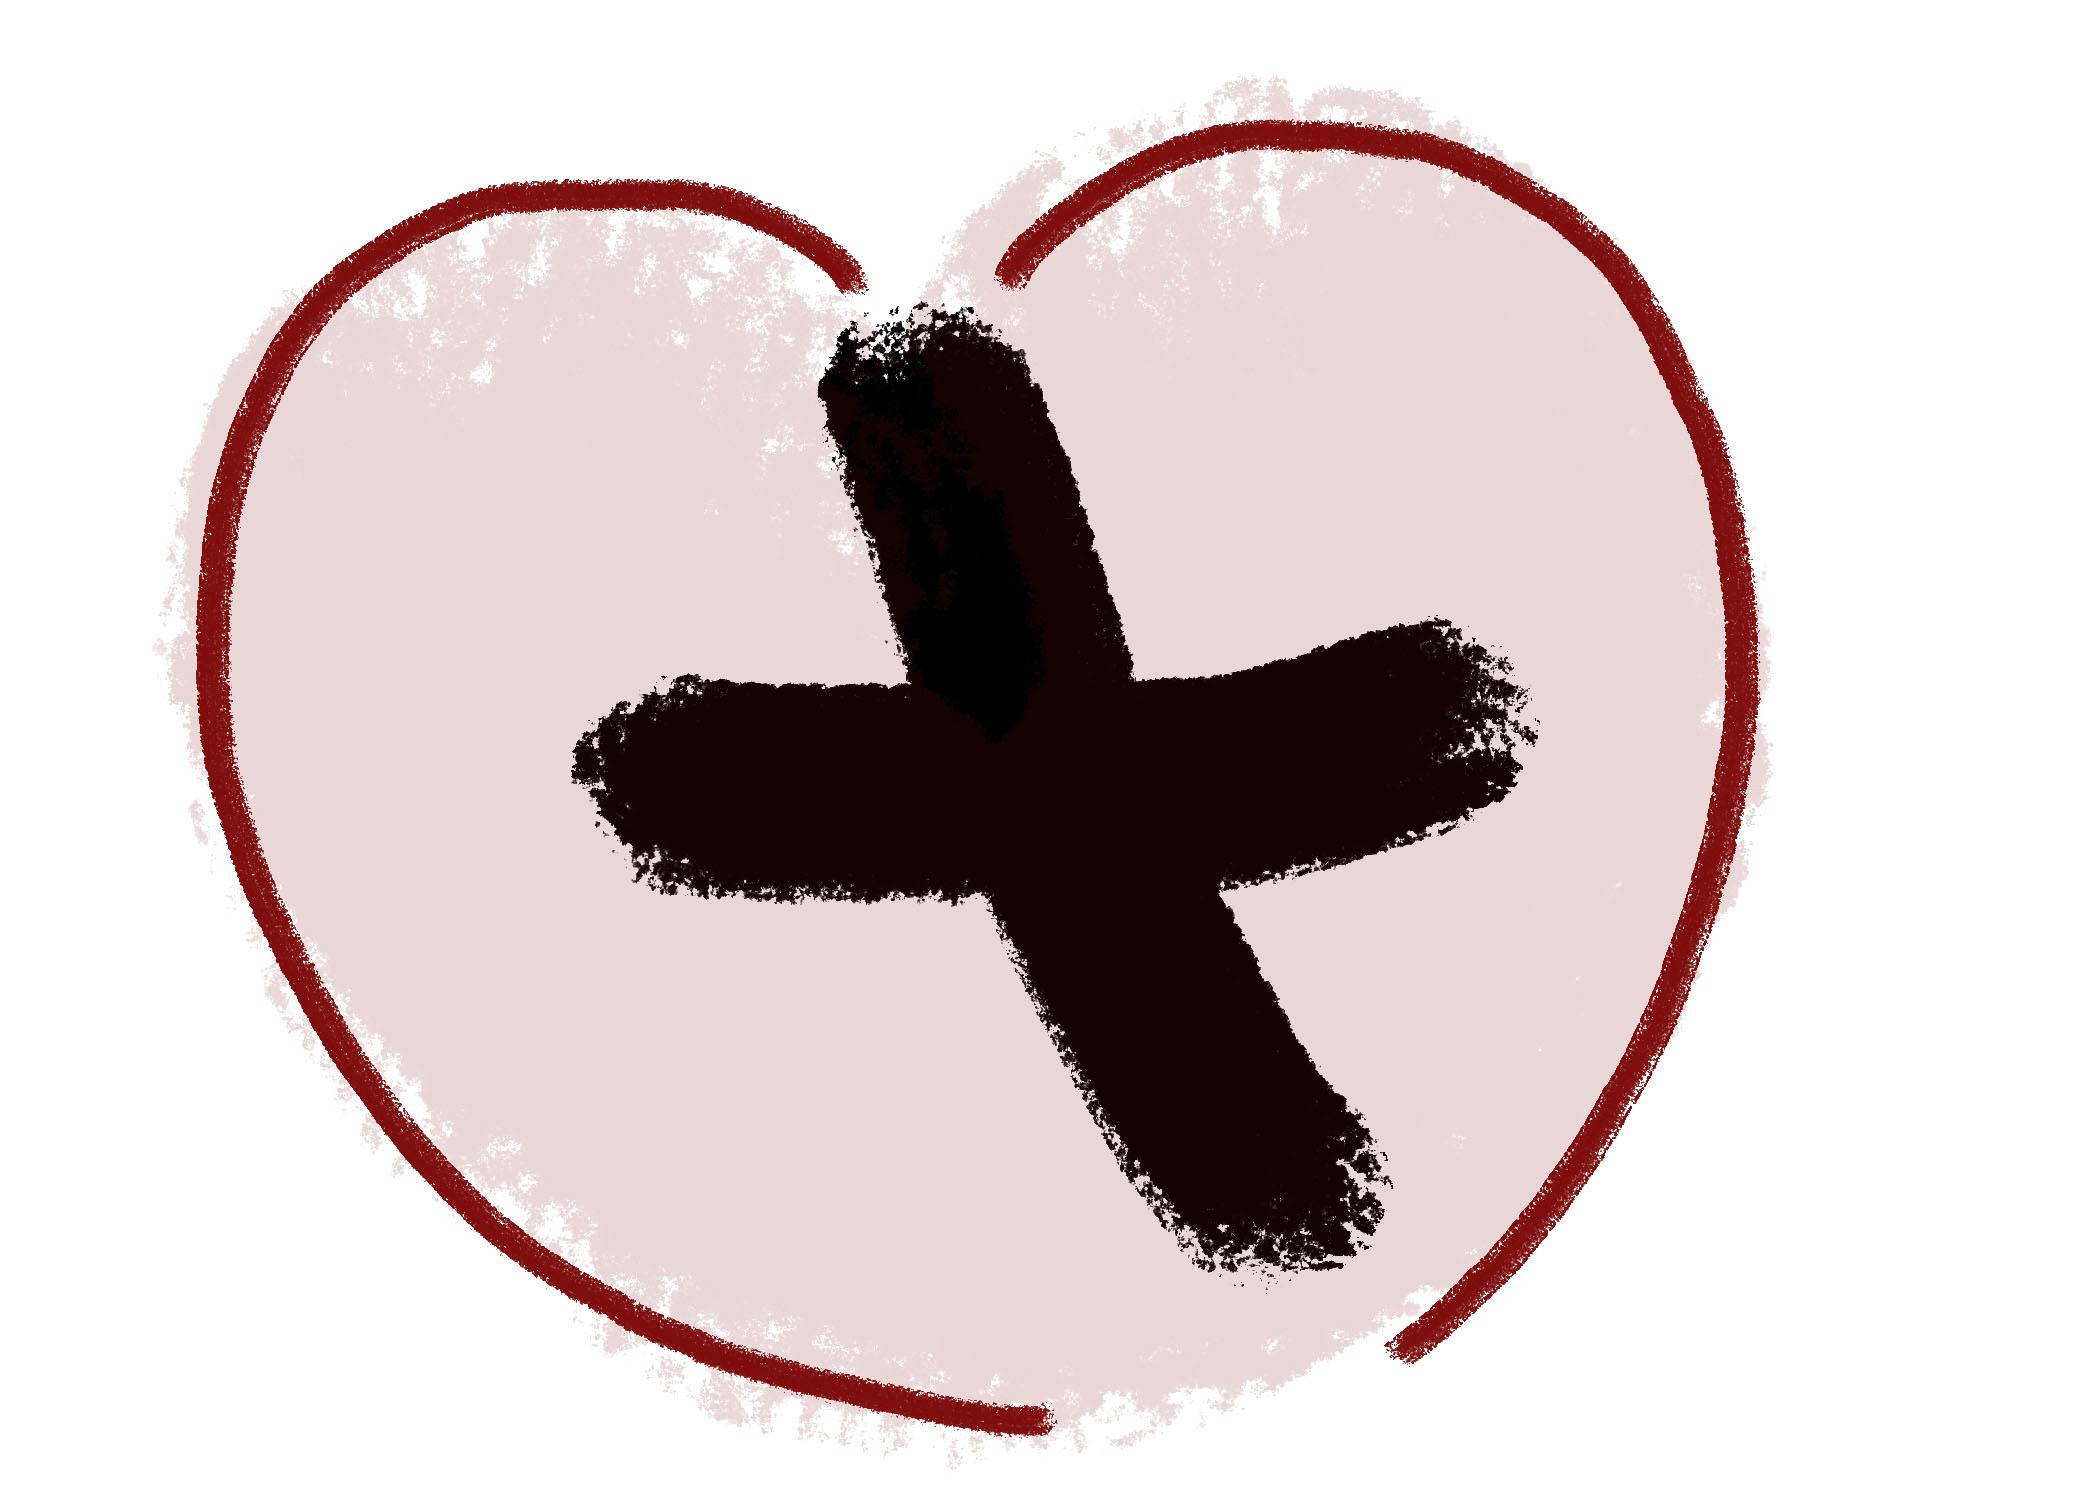 black cross drawn inside heart.